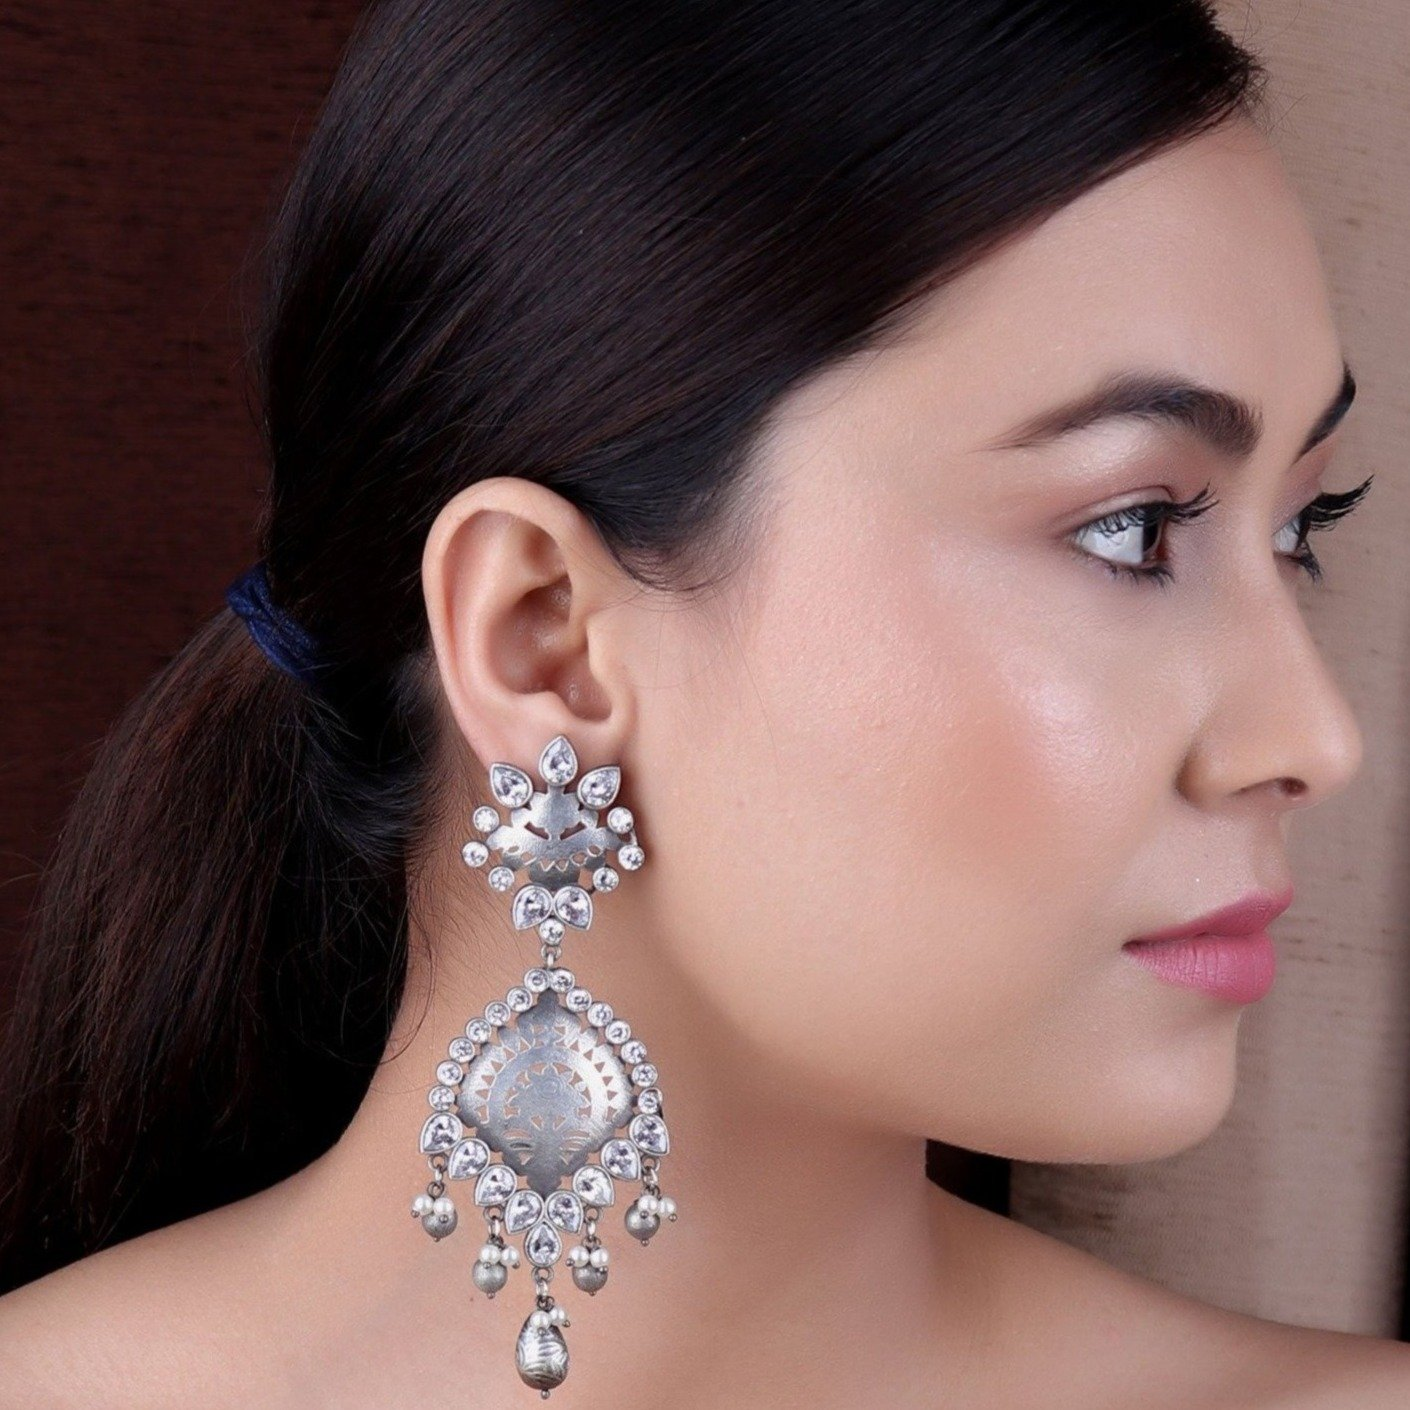 Earrings,The Fringe Silver Look Alile Earrings with White Stones - Cippele Multi Store